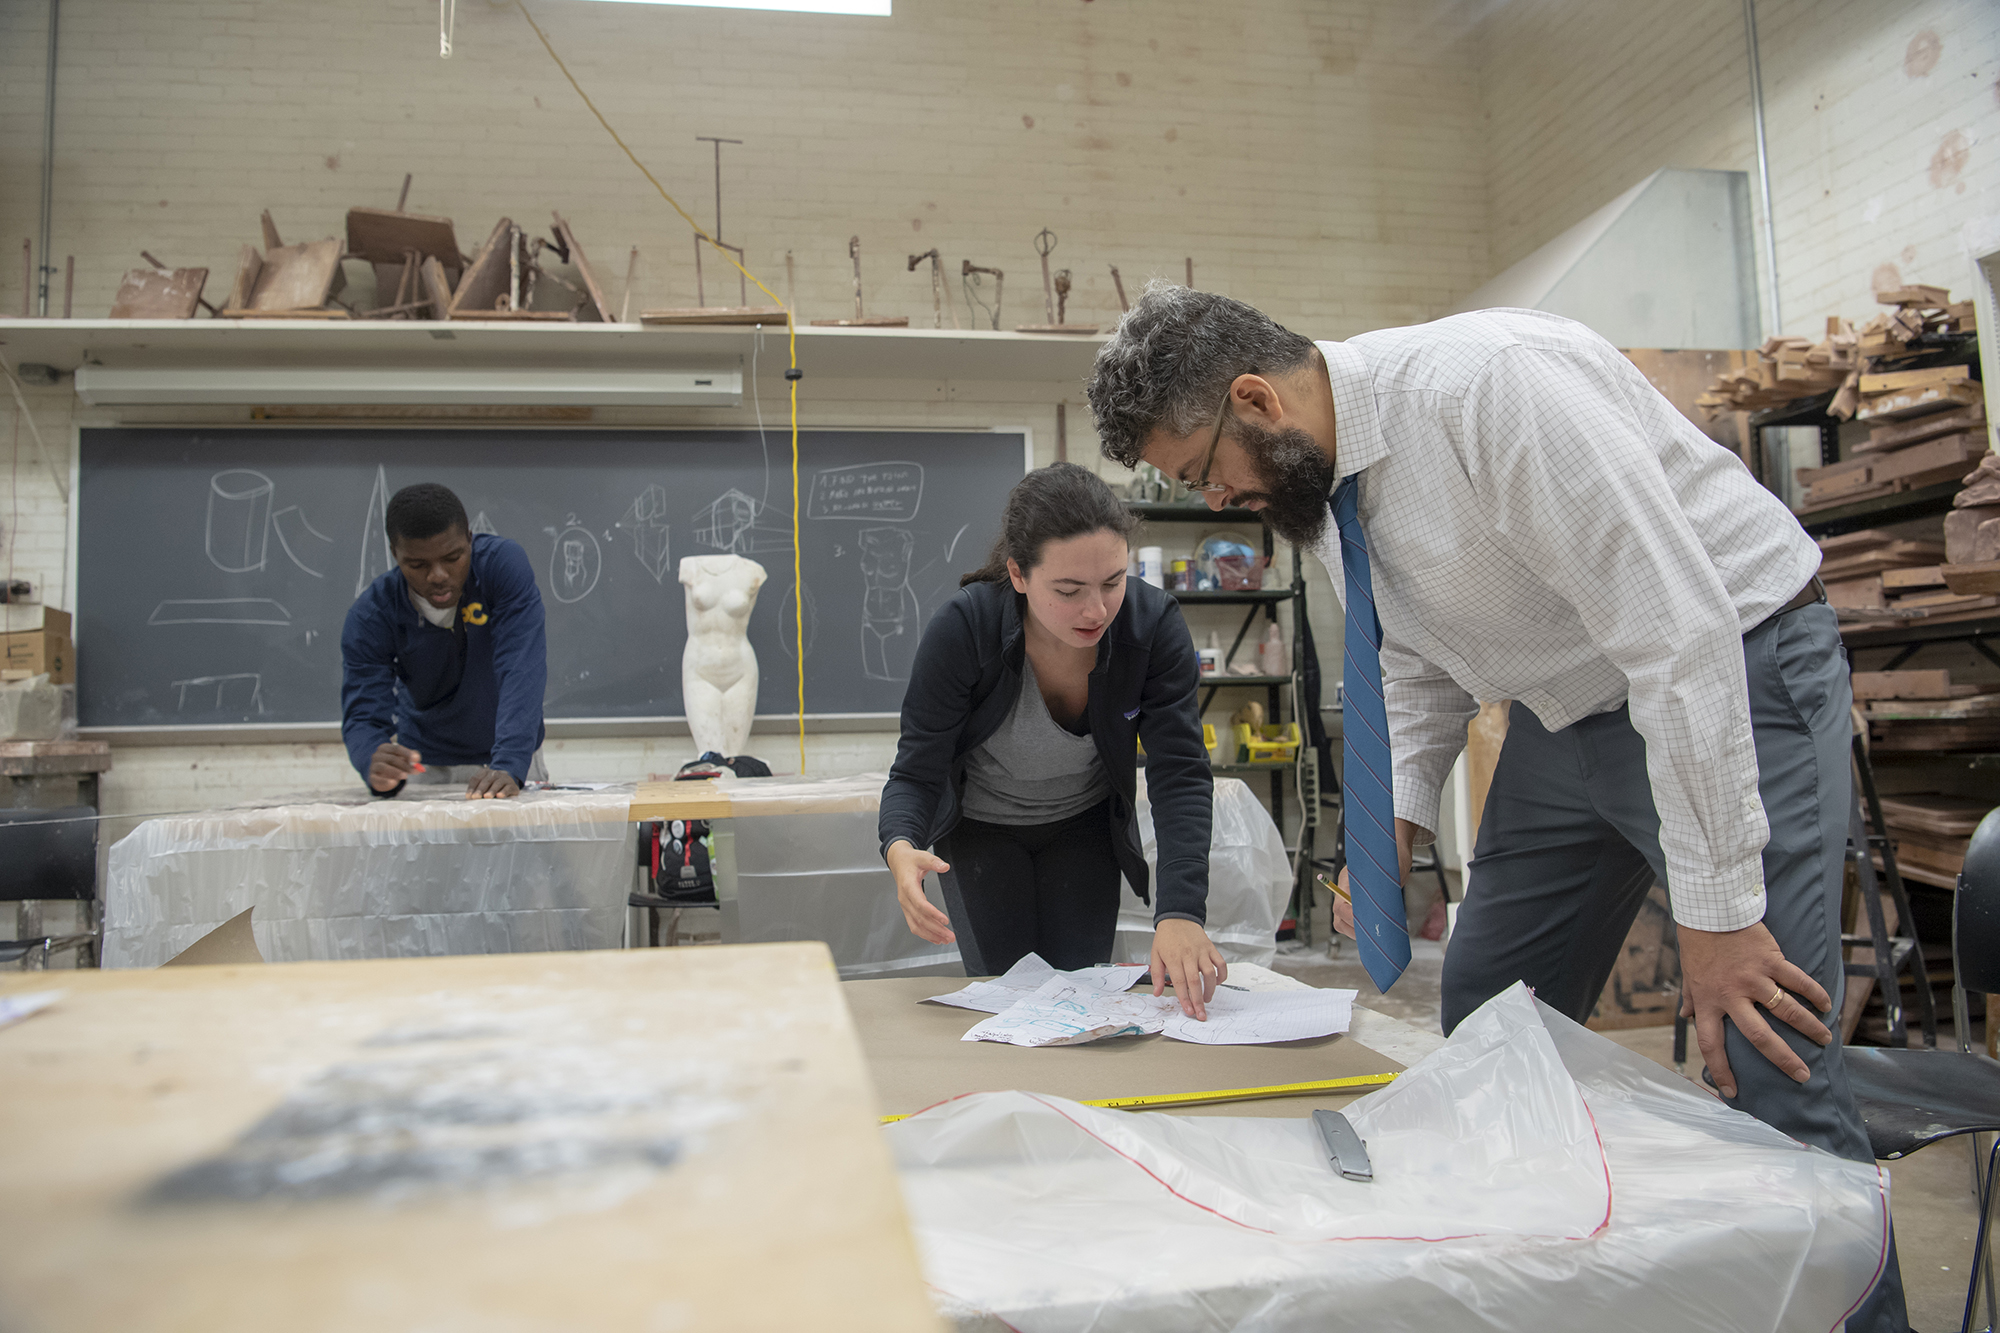 Image for Sculpture Professor Frederick Wright Jones consults with a student in a studio art class. Our faculty exhibit nationwide, and their own experiences provide insight for students who wish to pursue careers in artistic fields.